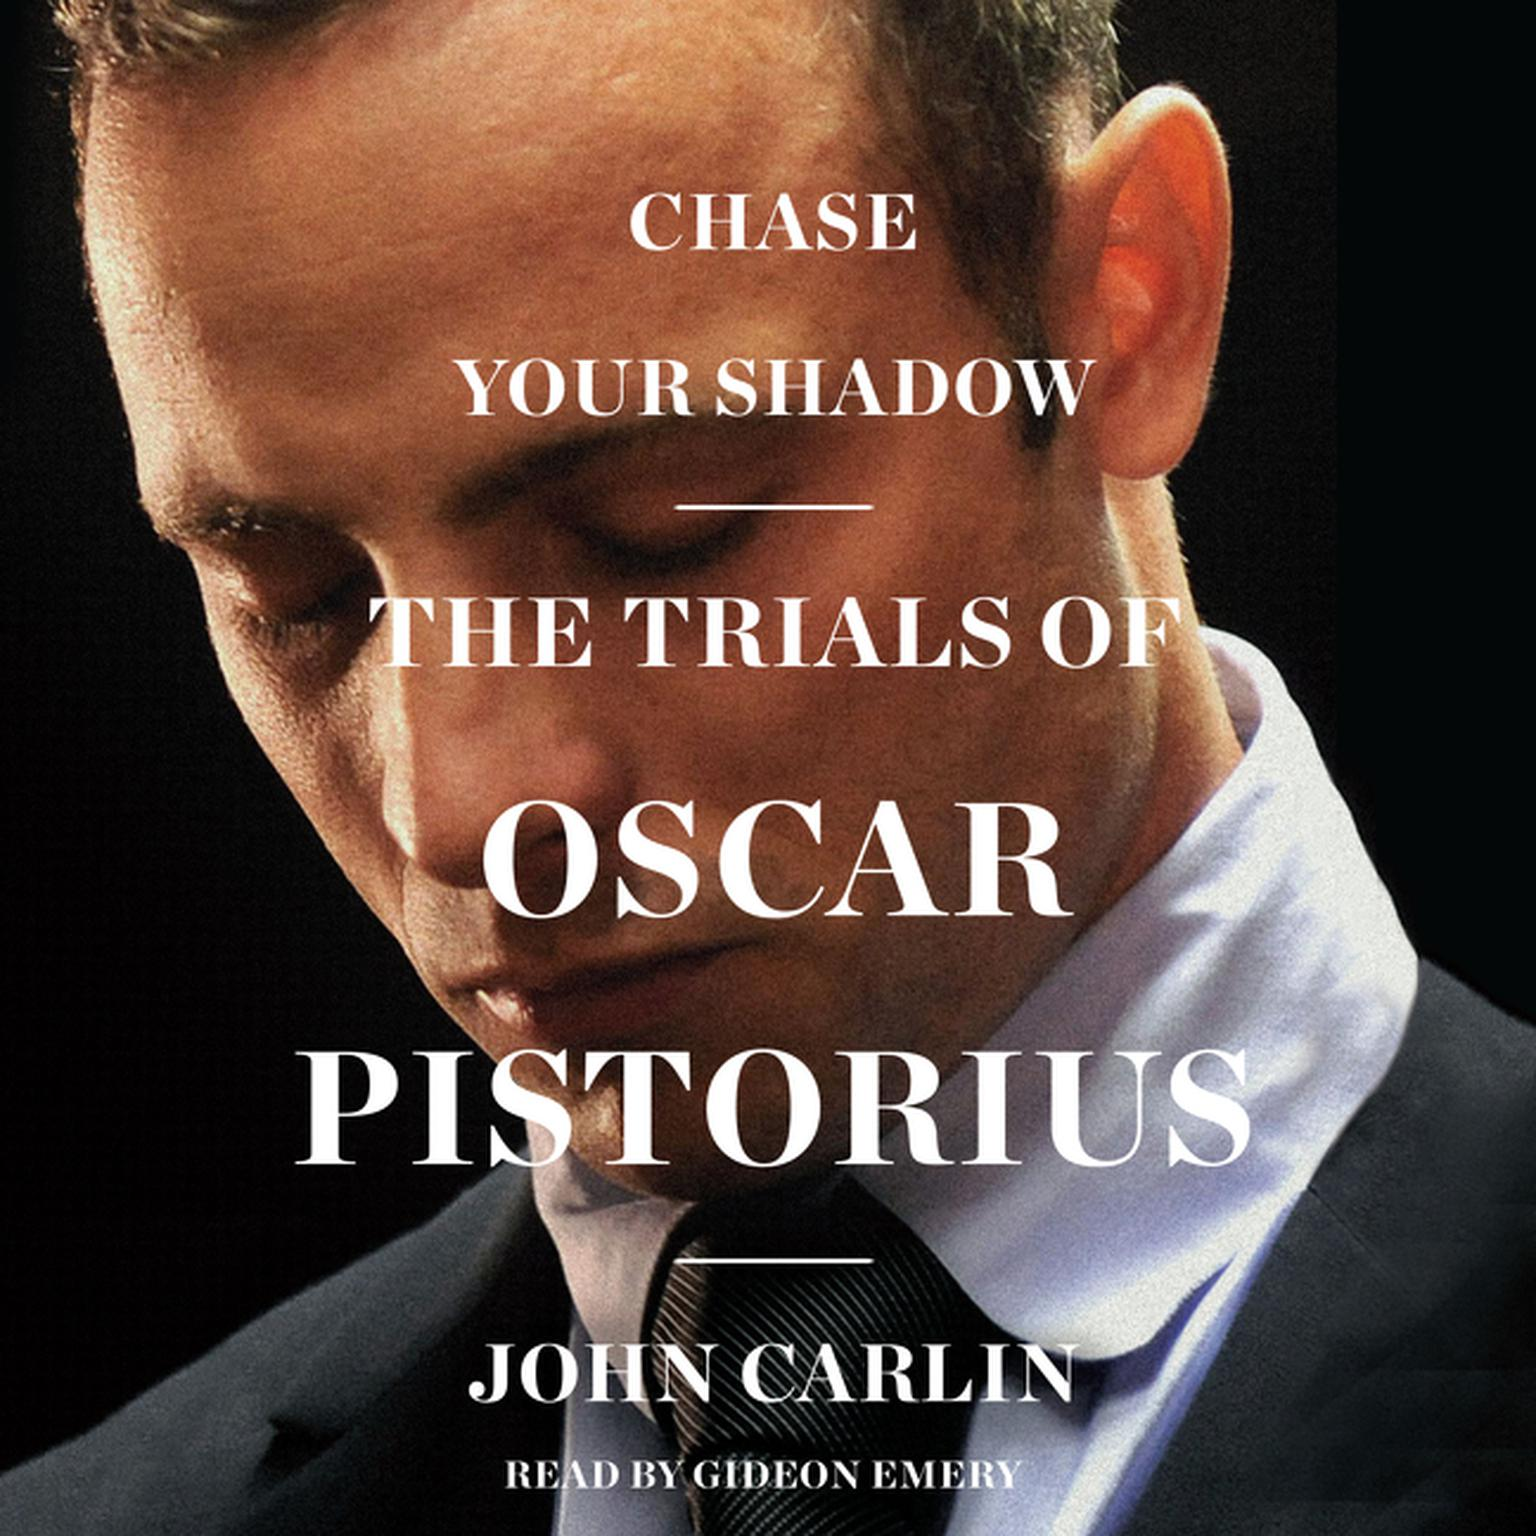 Printable Chase Your Shadow: The   Trials of Oscar Pistorius Audiobook Cover Art